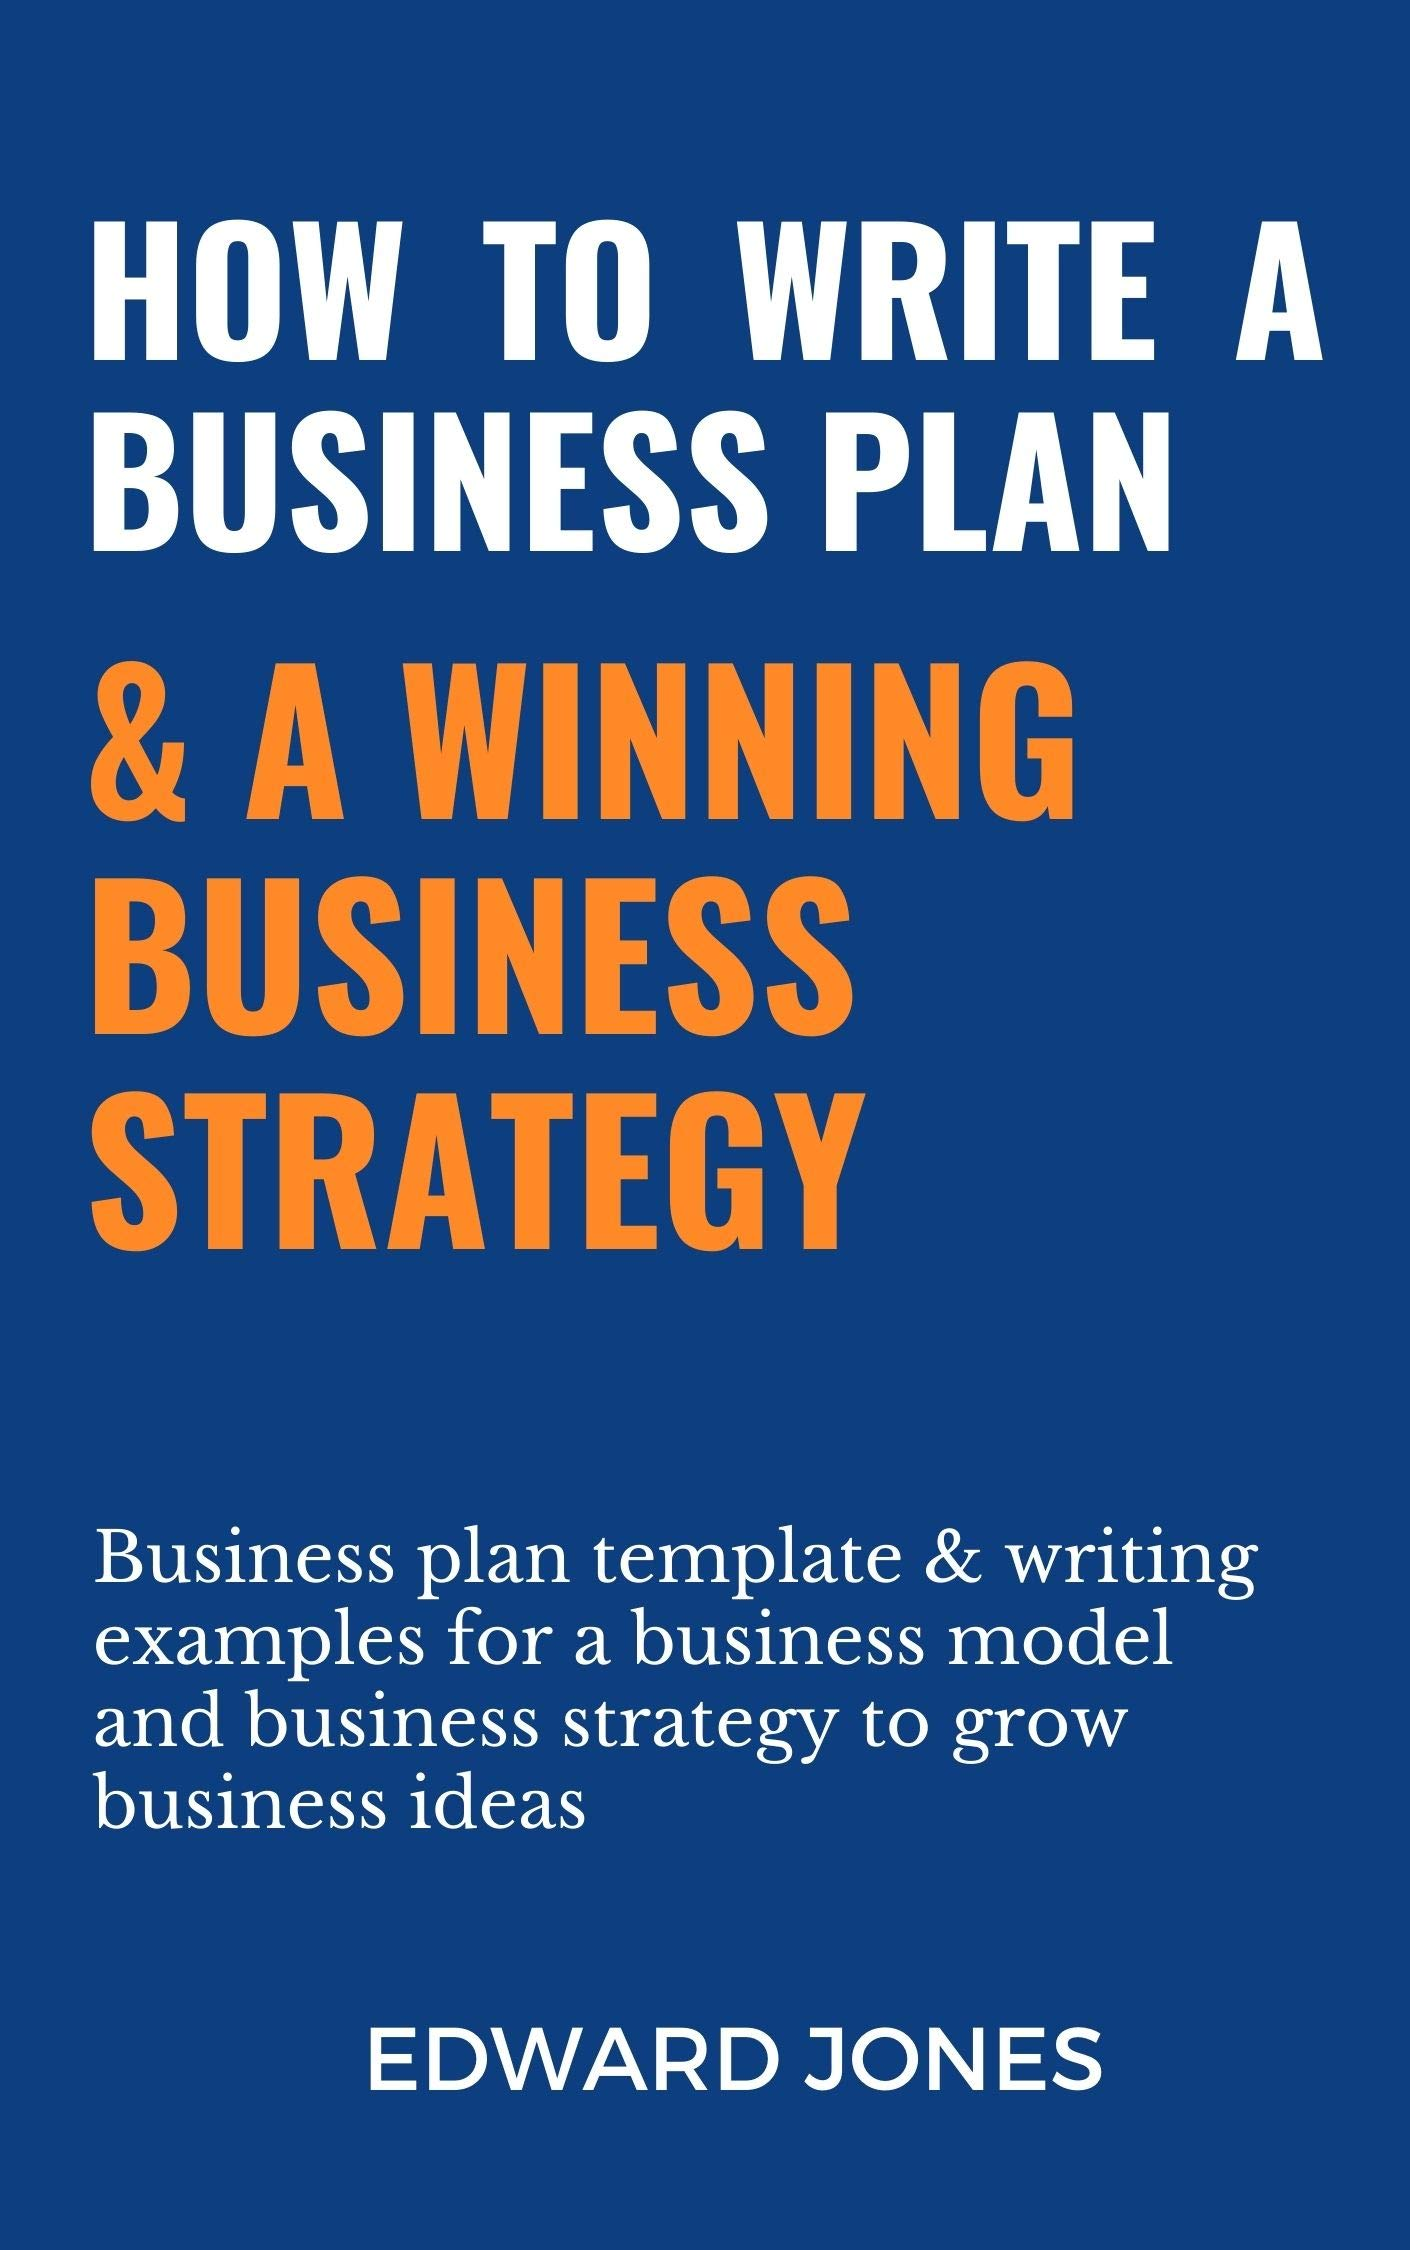 How To Write A Business Plan & A Winning Business Strategy: Business plan template & writing examples for a business model and business strategy to grow business ideas